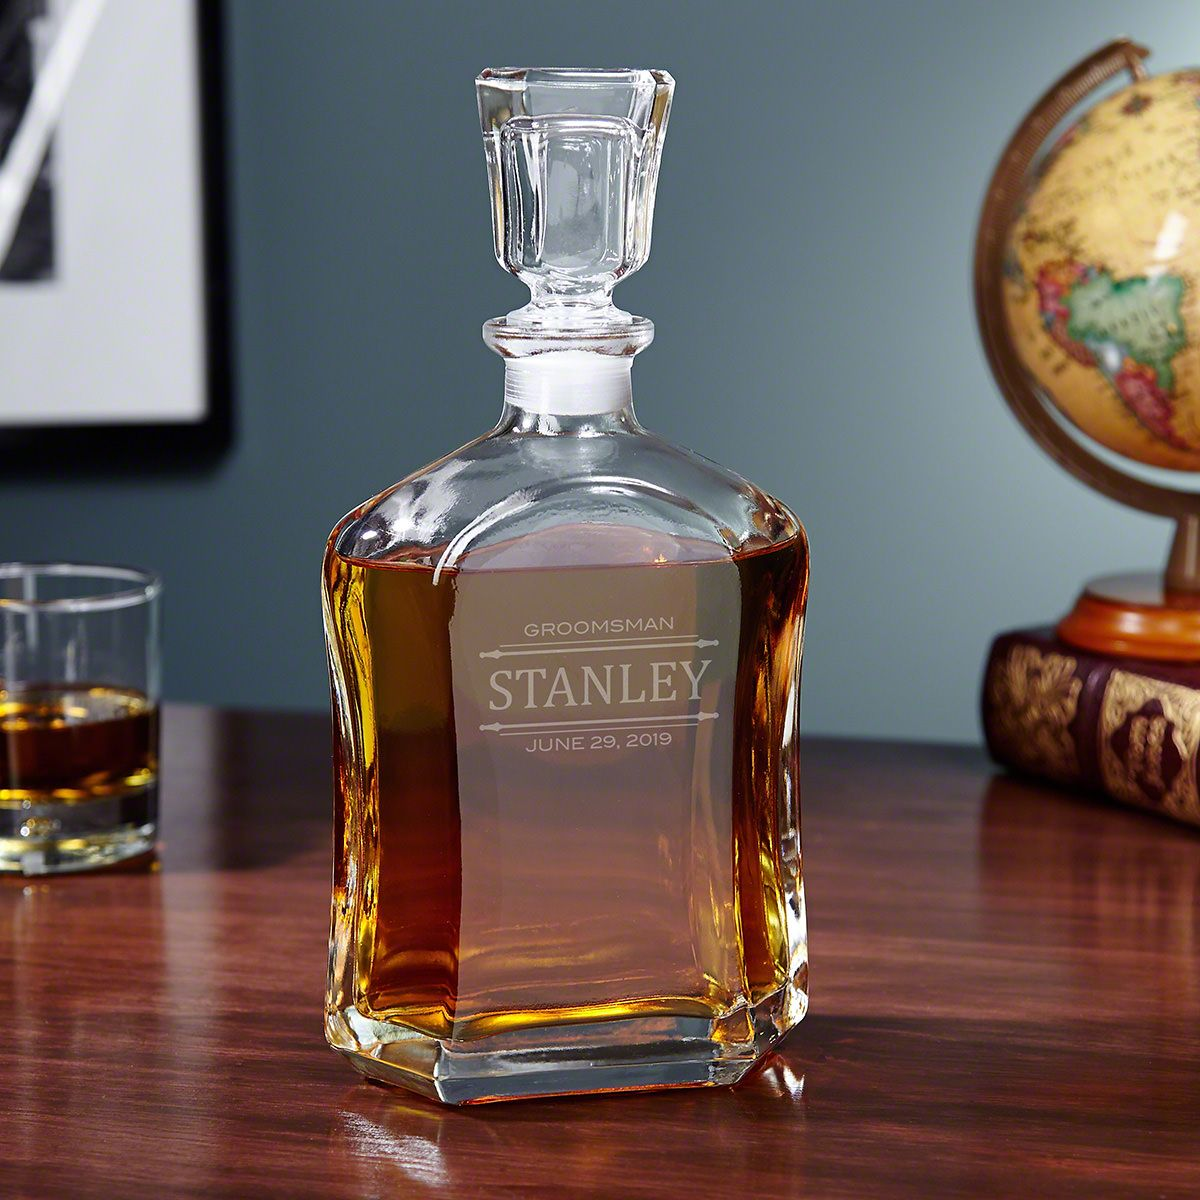 Stanford Groomsmen Personalized Whiskey Decanter